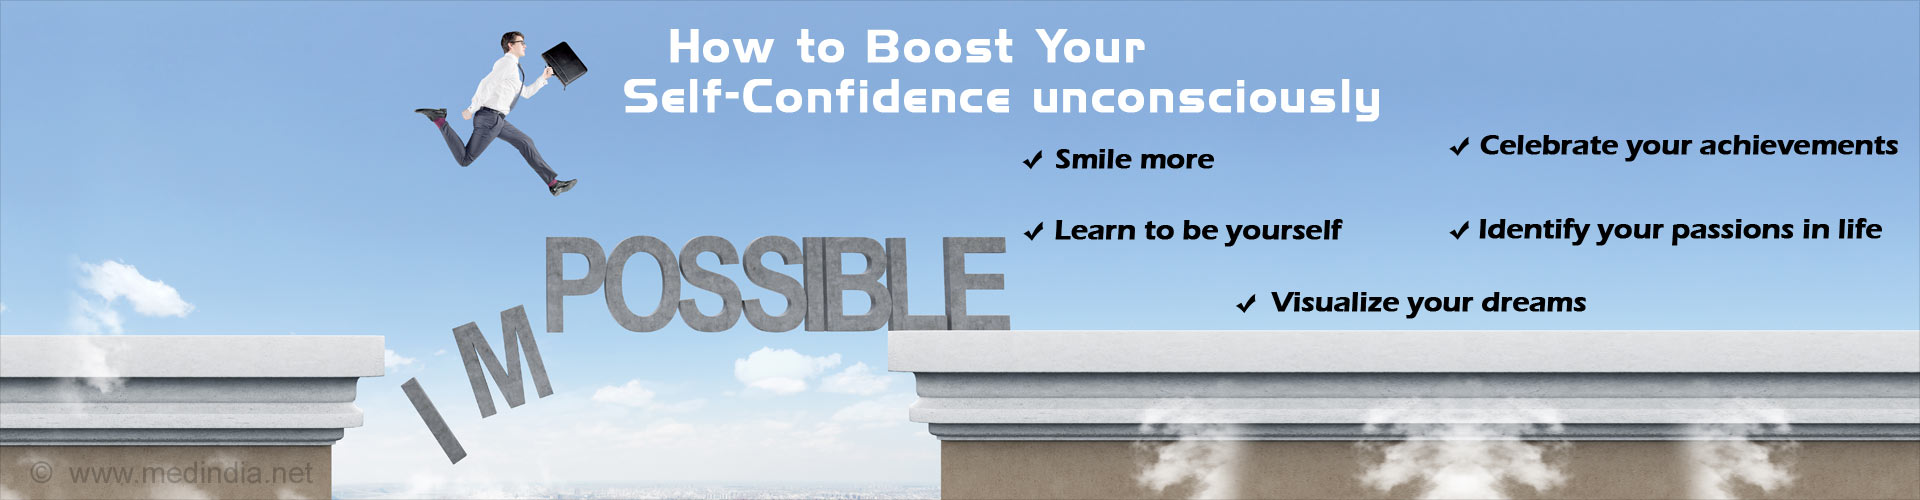 How to Boost Self confidence unconsciously - New Breakthrough in Neuroscience